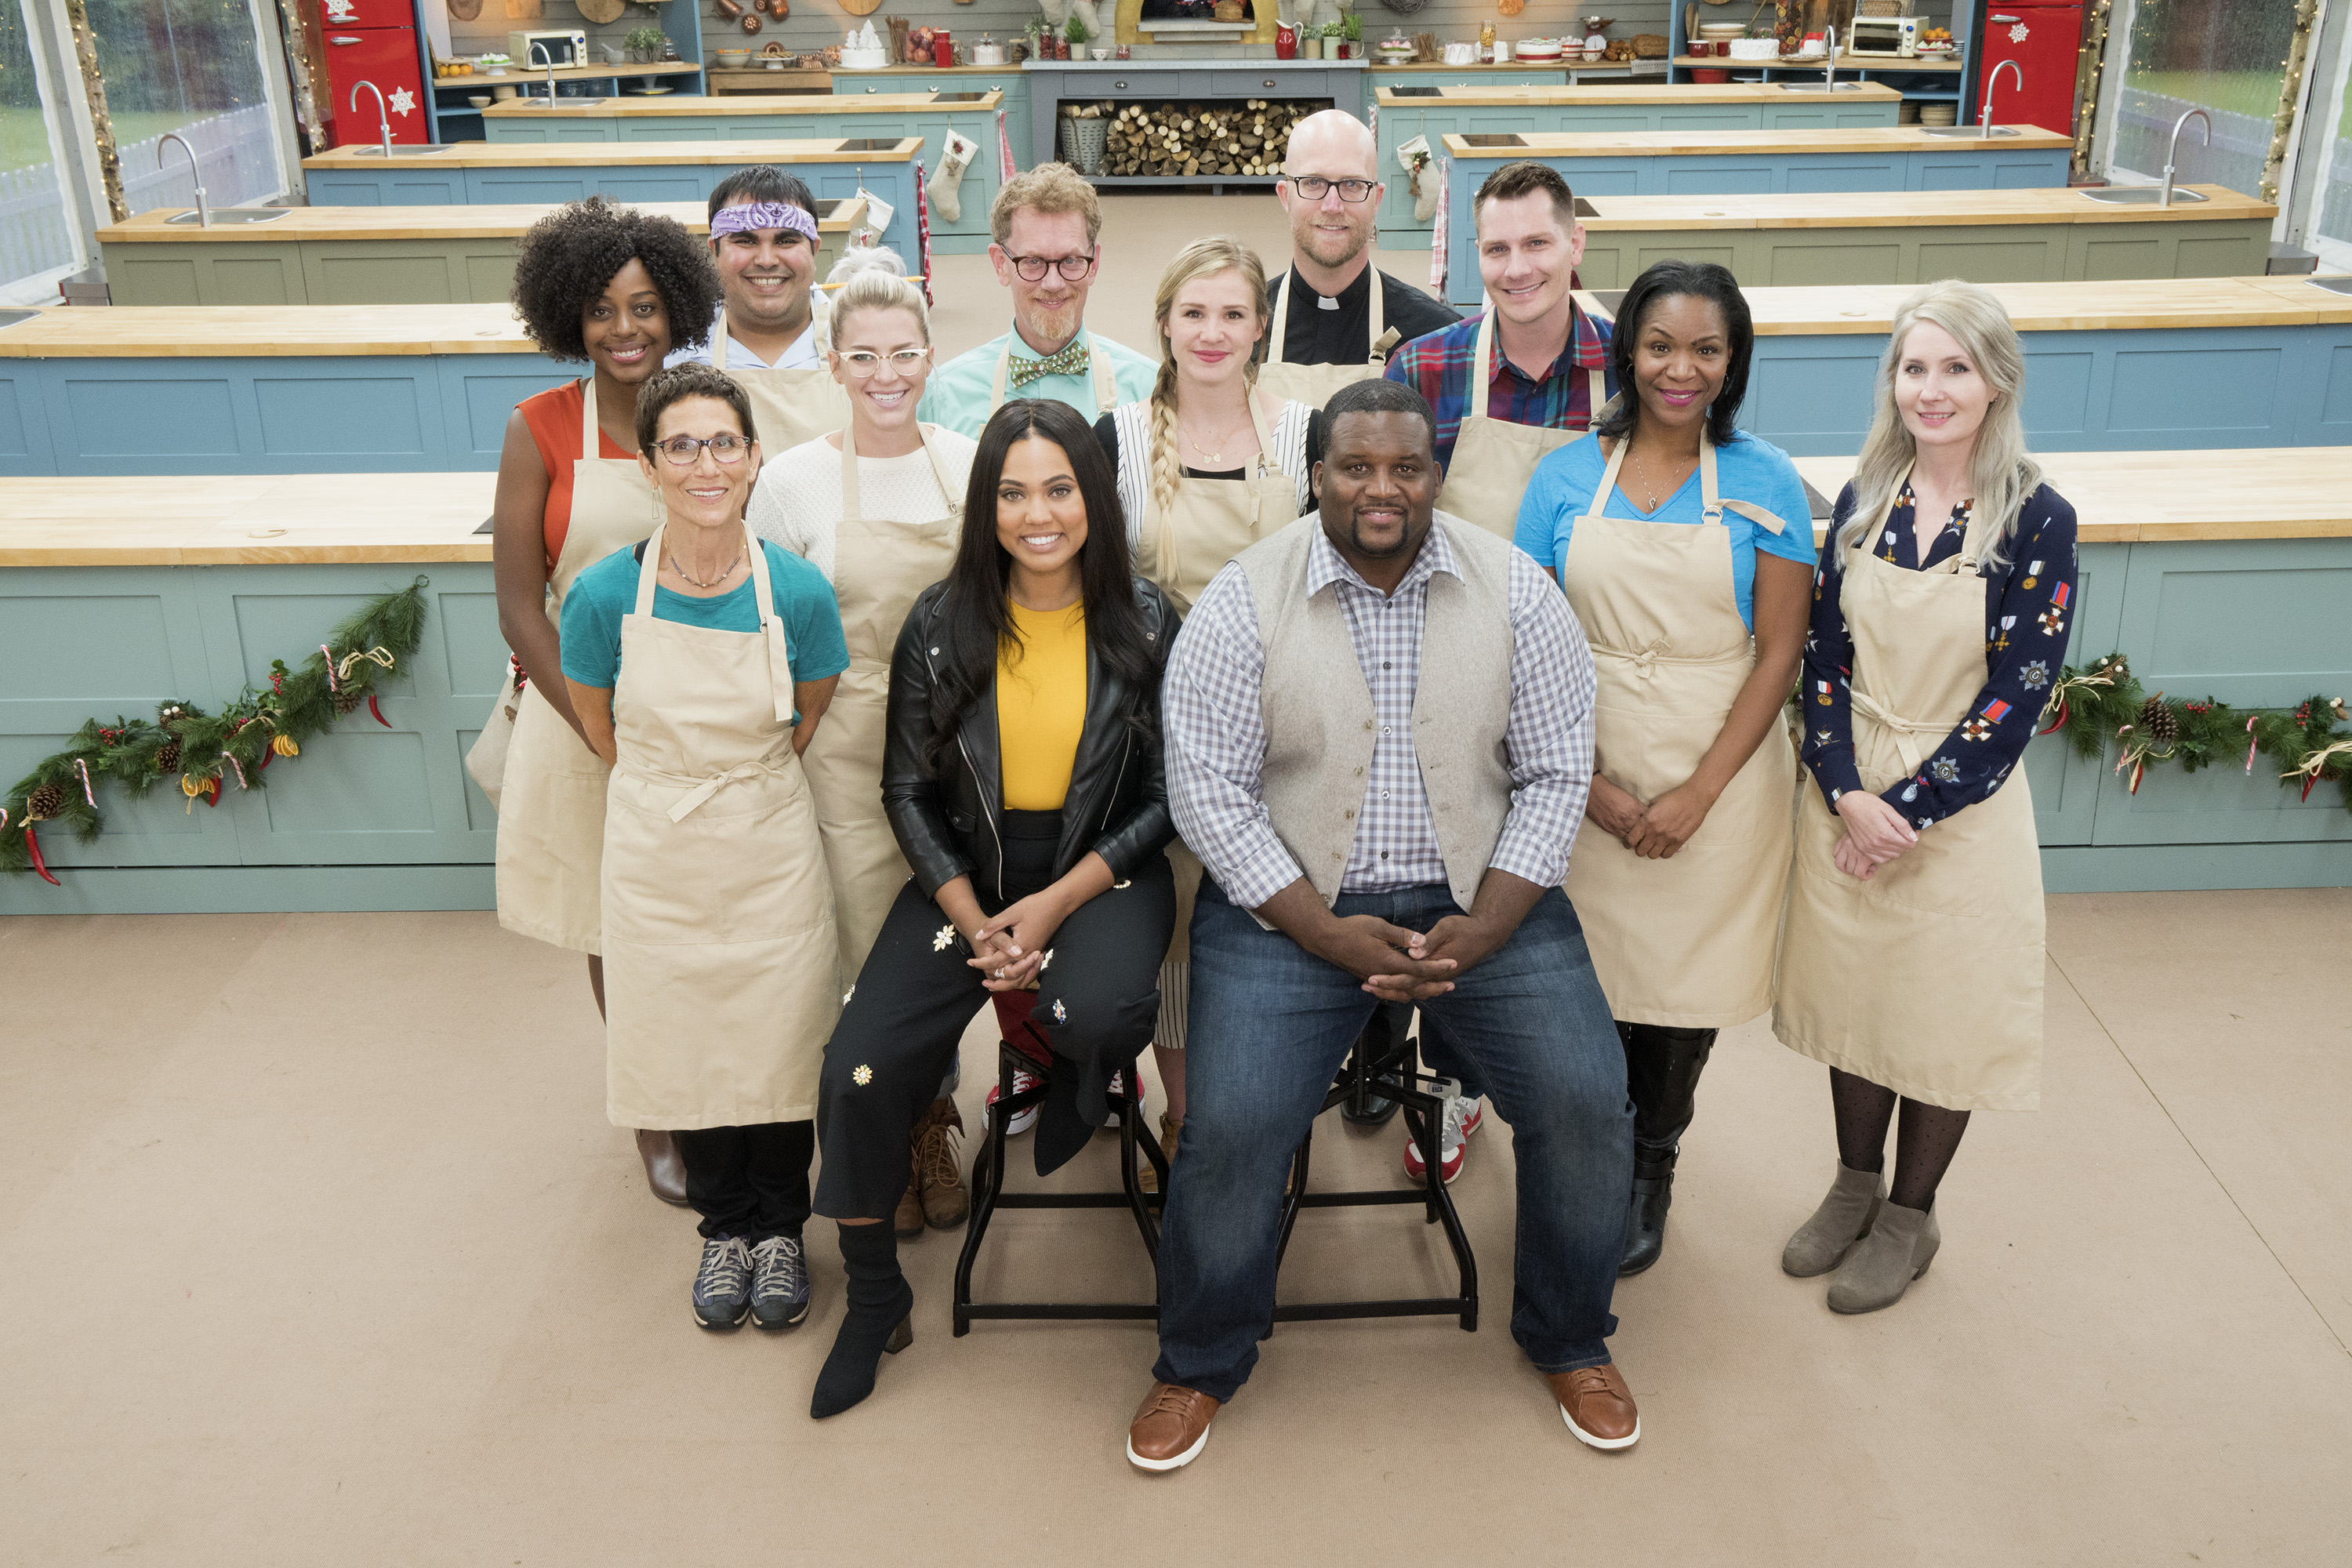 Great American Baking Show 2020.Great American Baking Show 2020 Show 2020